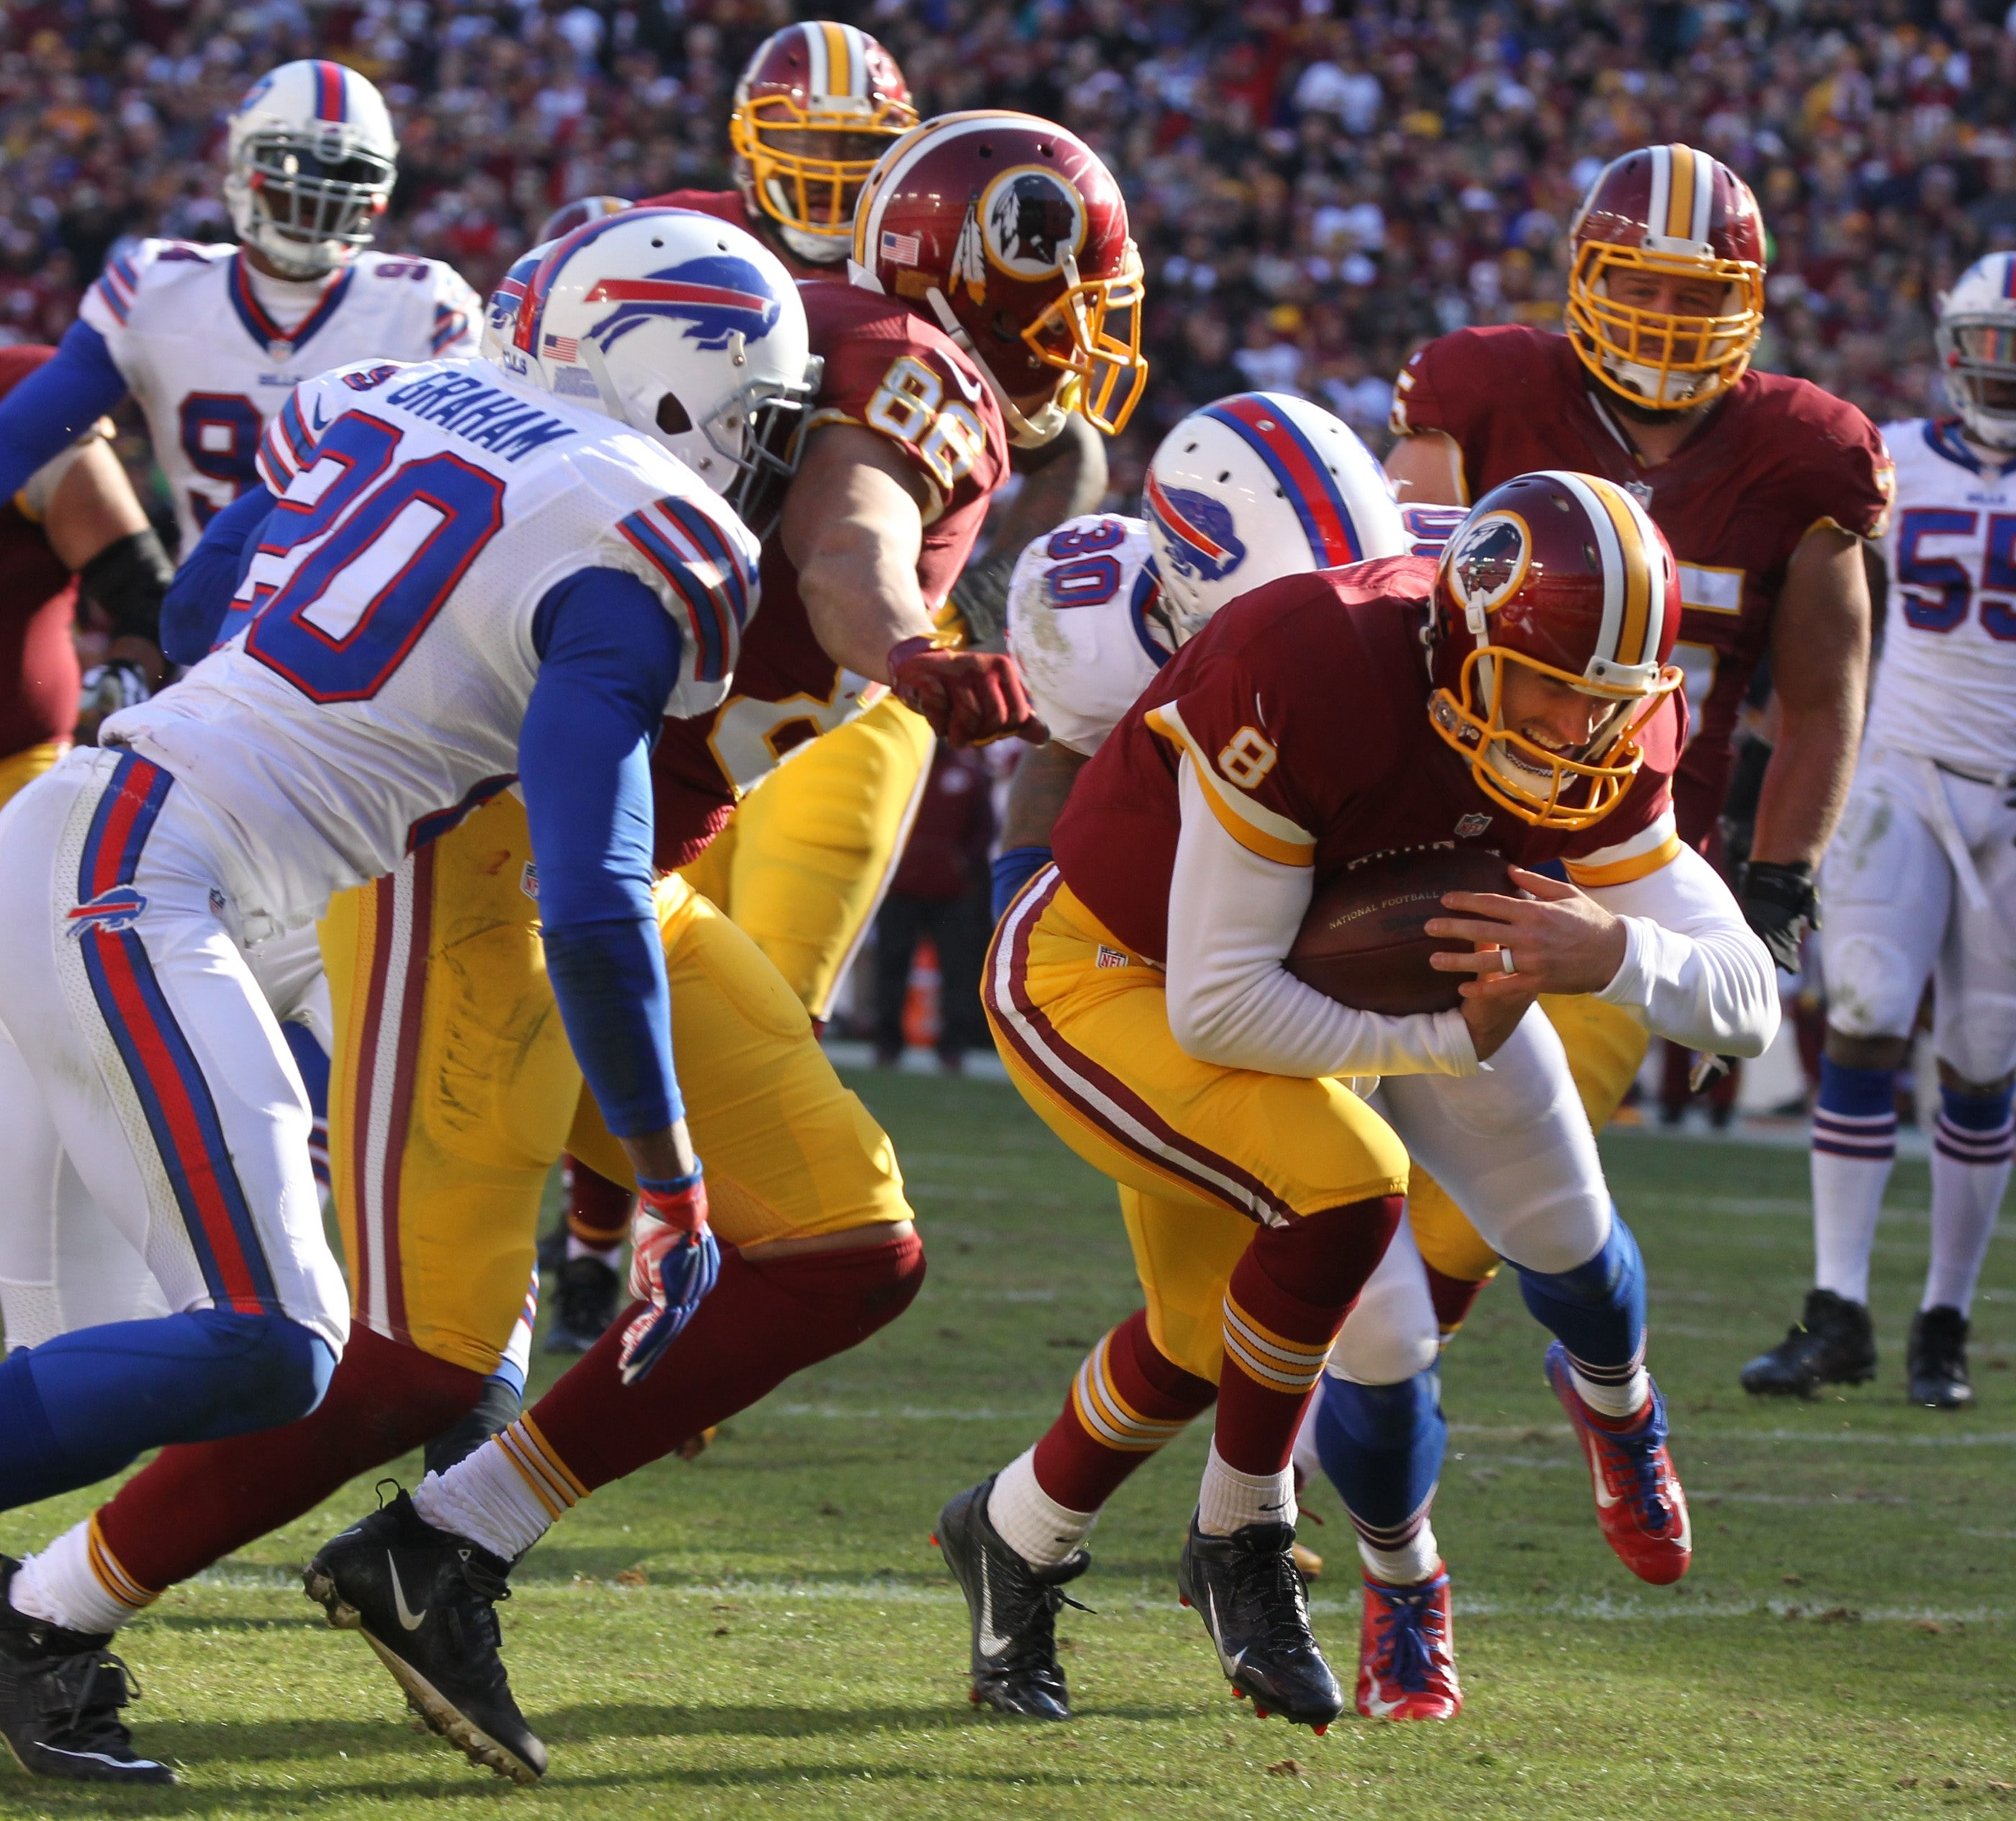 1LINE CUTLINE Washington Redskins quarterback Kirk Cousins rushes for touchdown in the second quarter at Fed Ex field in Landover, Md on Sunday, Dec. 20, 2015.  (James P. McCoy/ Buffalo News)